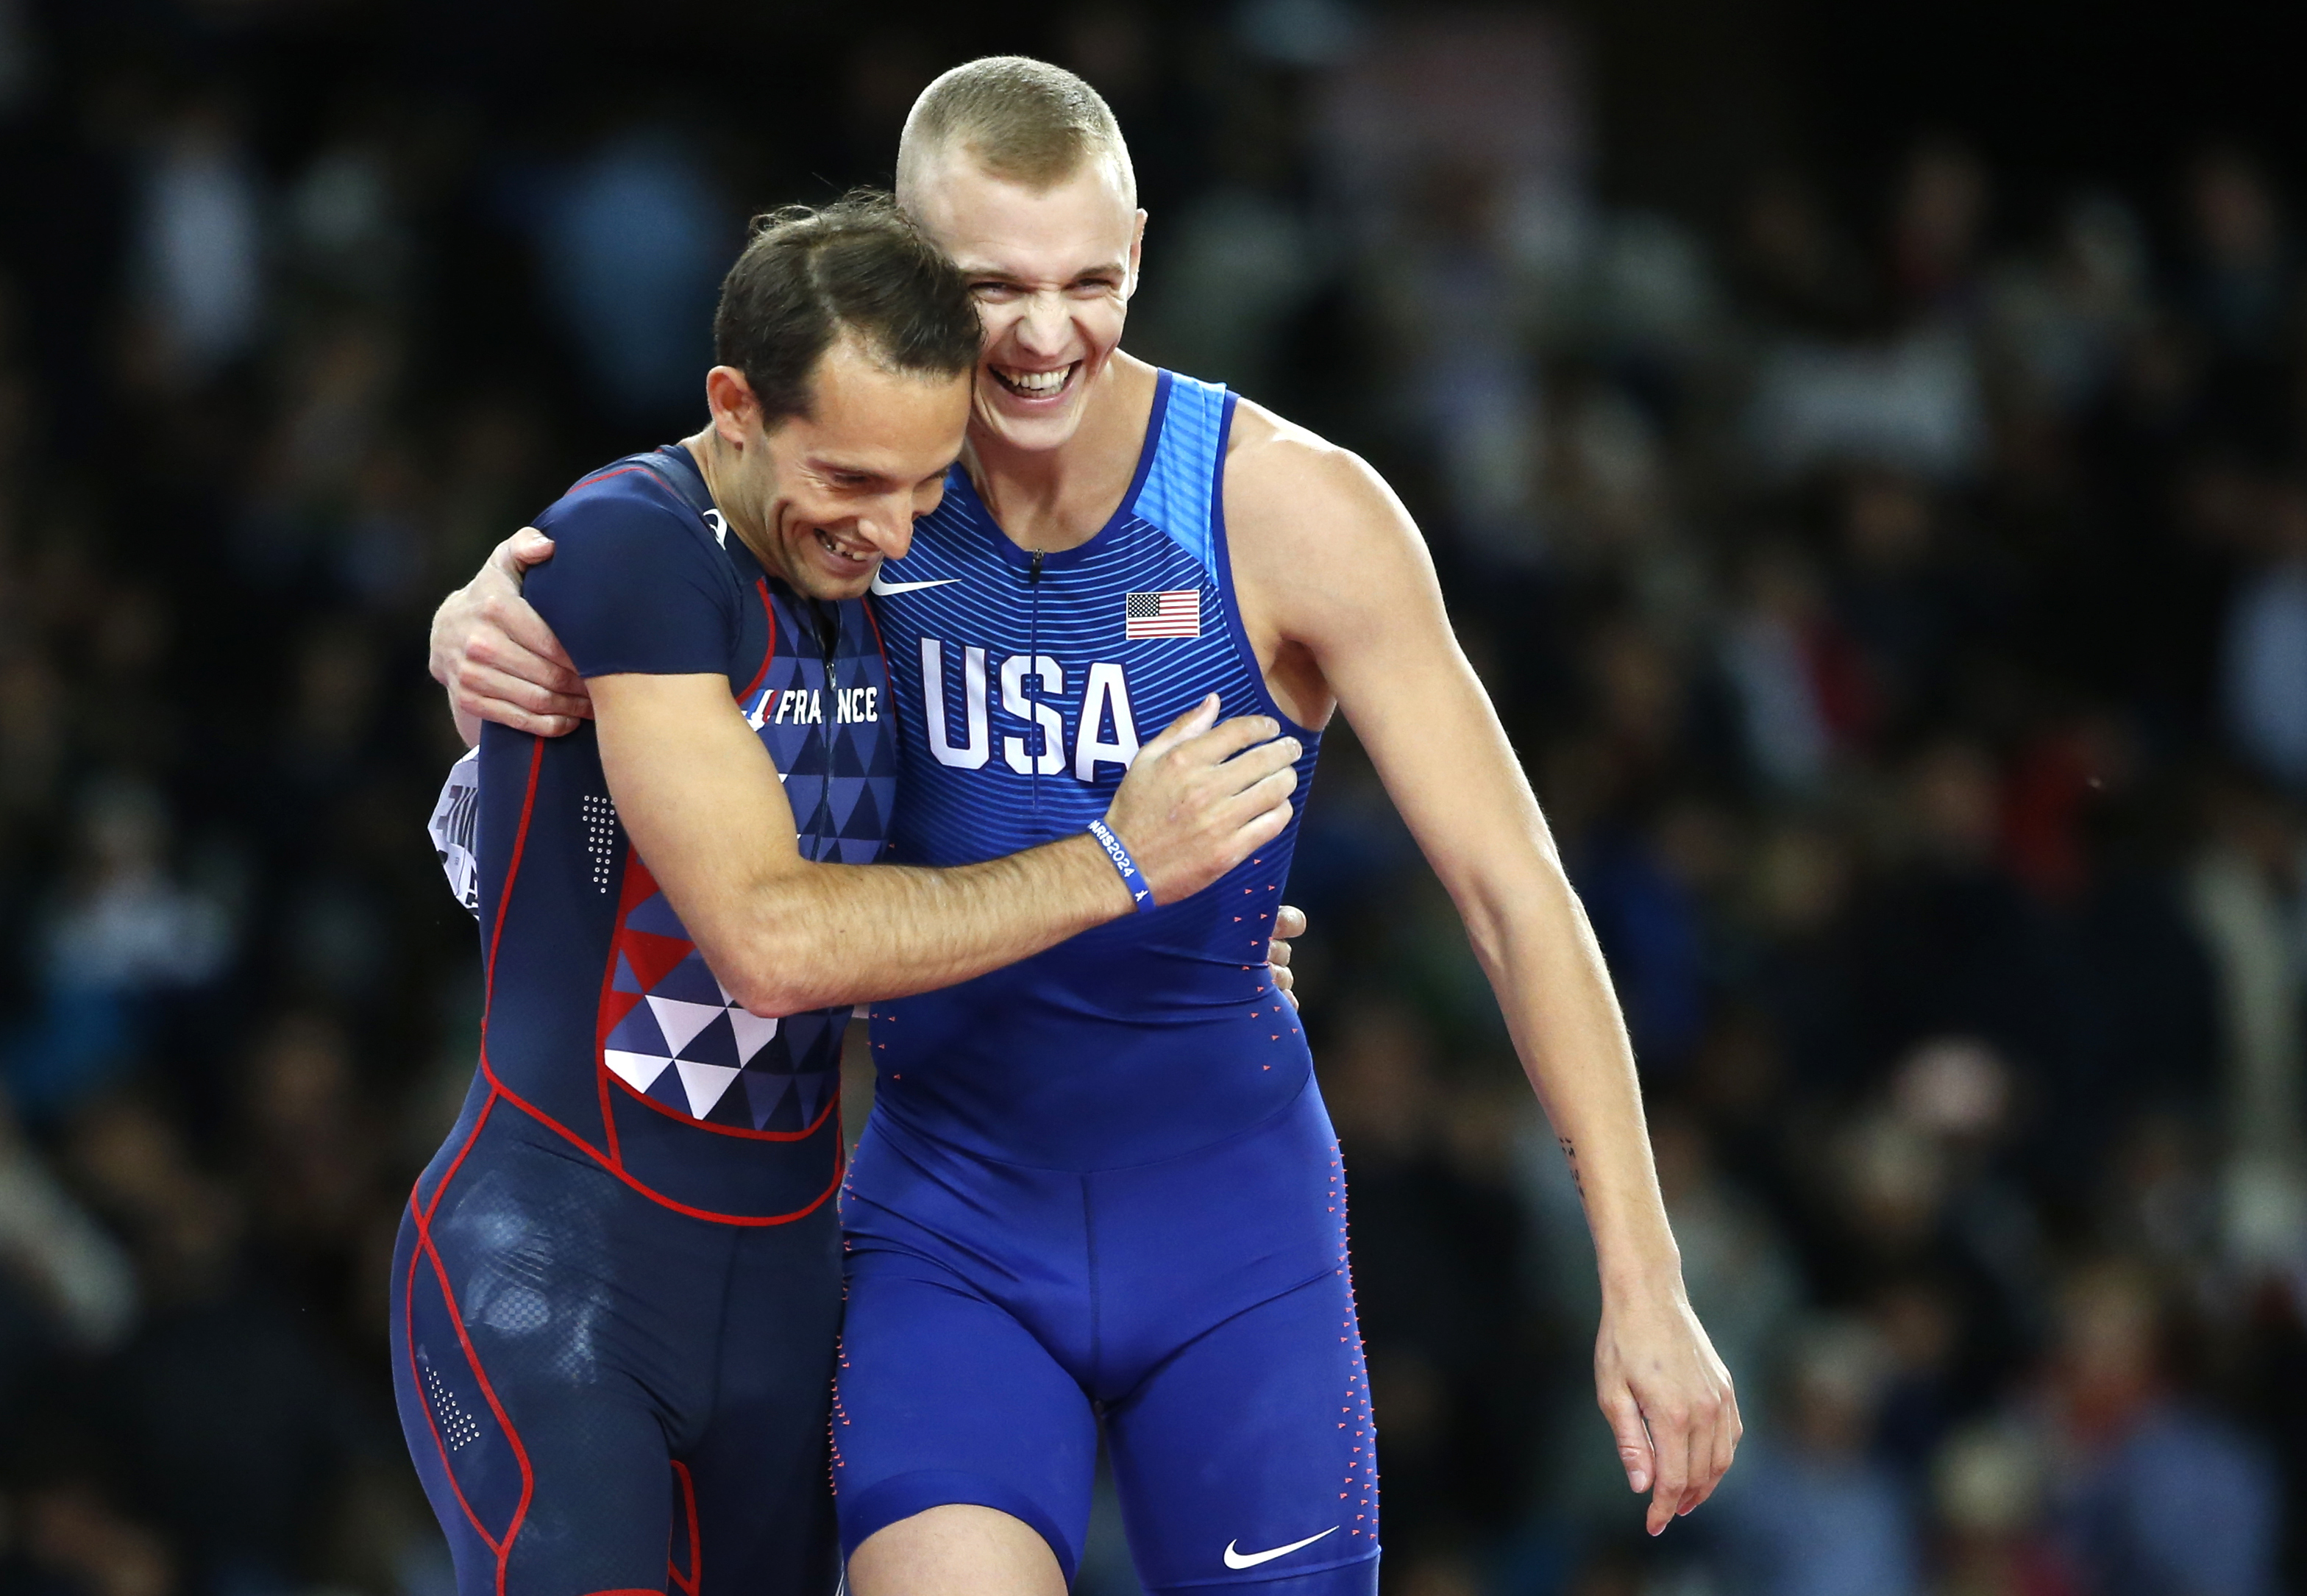 France's bronze medal winner Renaud Lavillenie, left, and United States' gold medal winner Sam Kendricks congratulate each other after the men's pole vault final during the World Athletics Championships in London Tuesday, Aug. 8, 2017. (AP Photo/Matthias